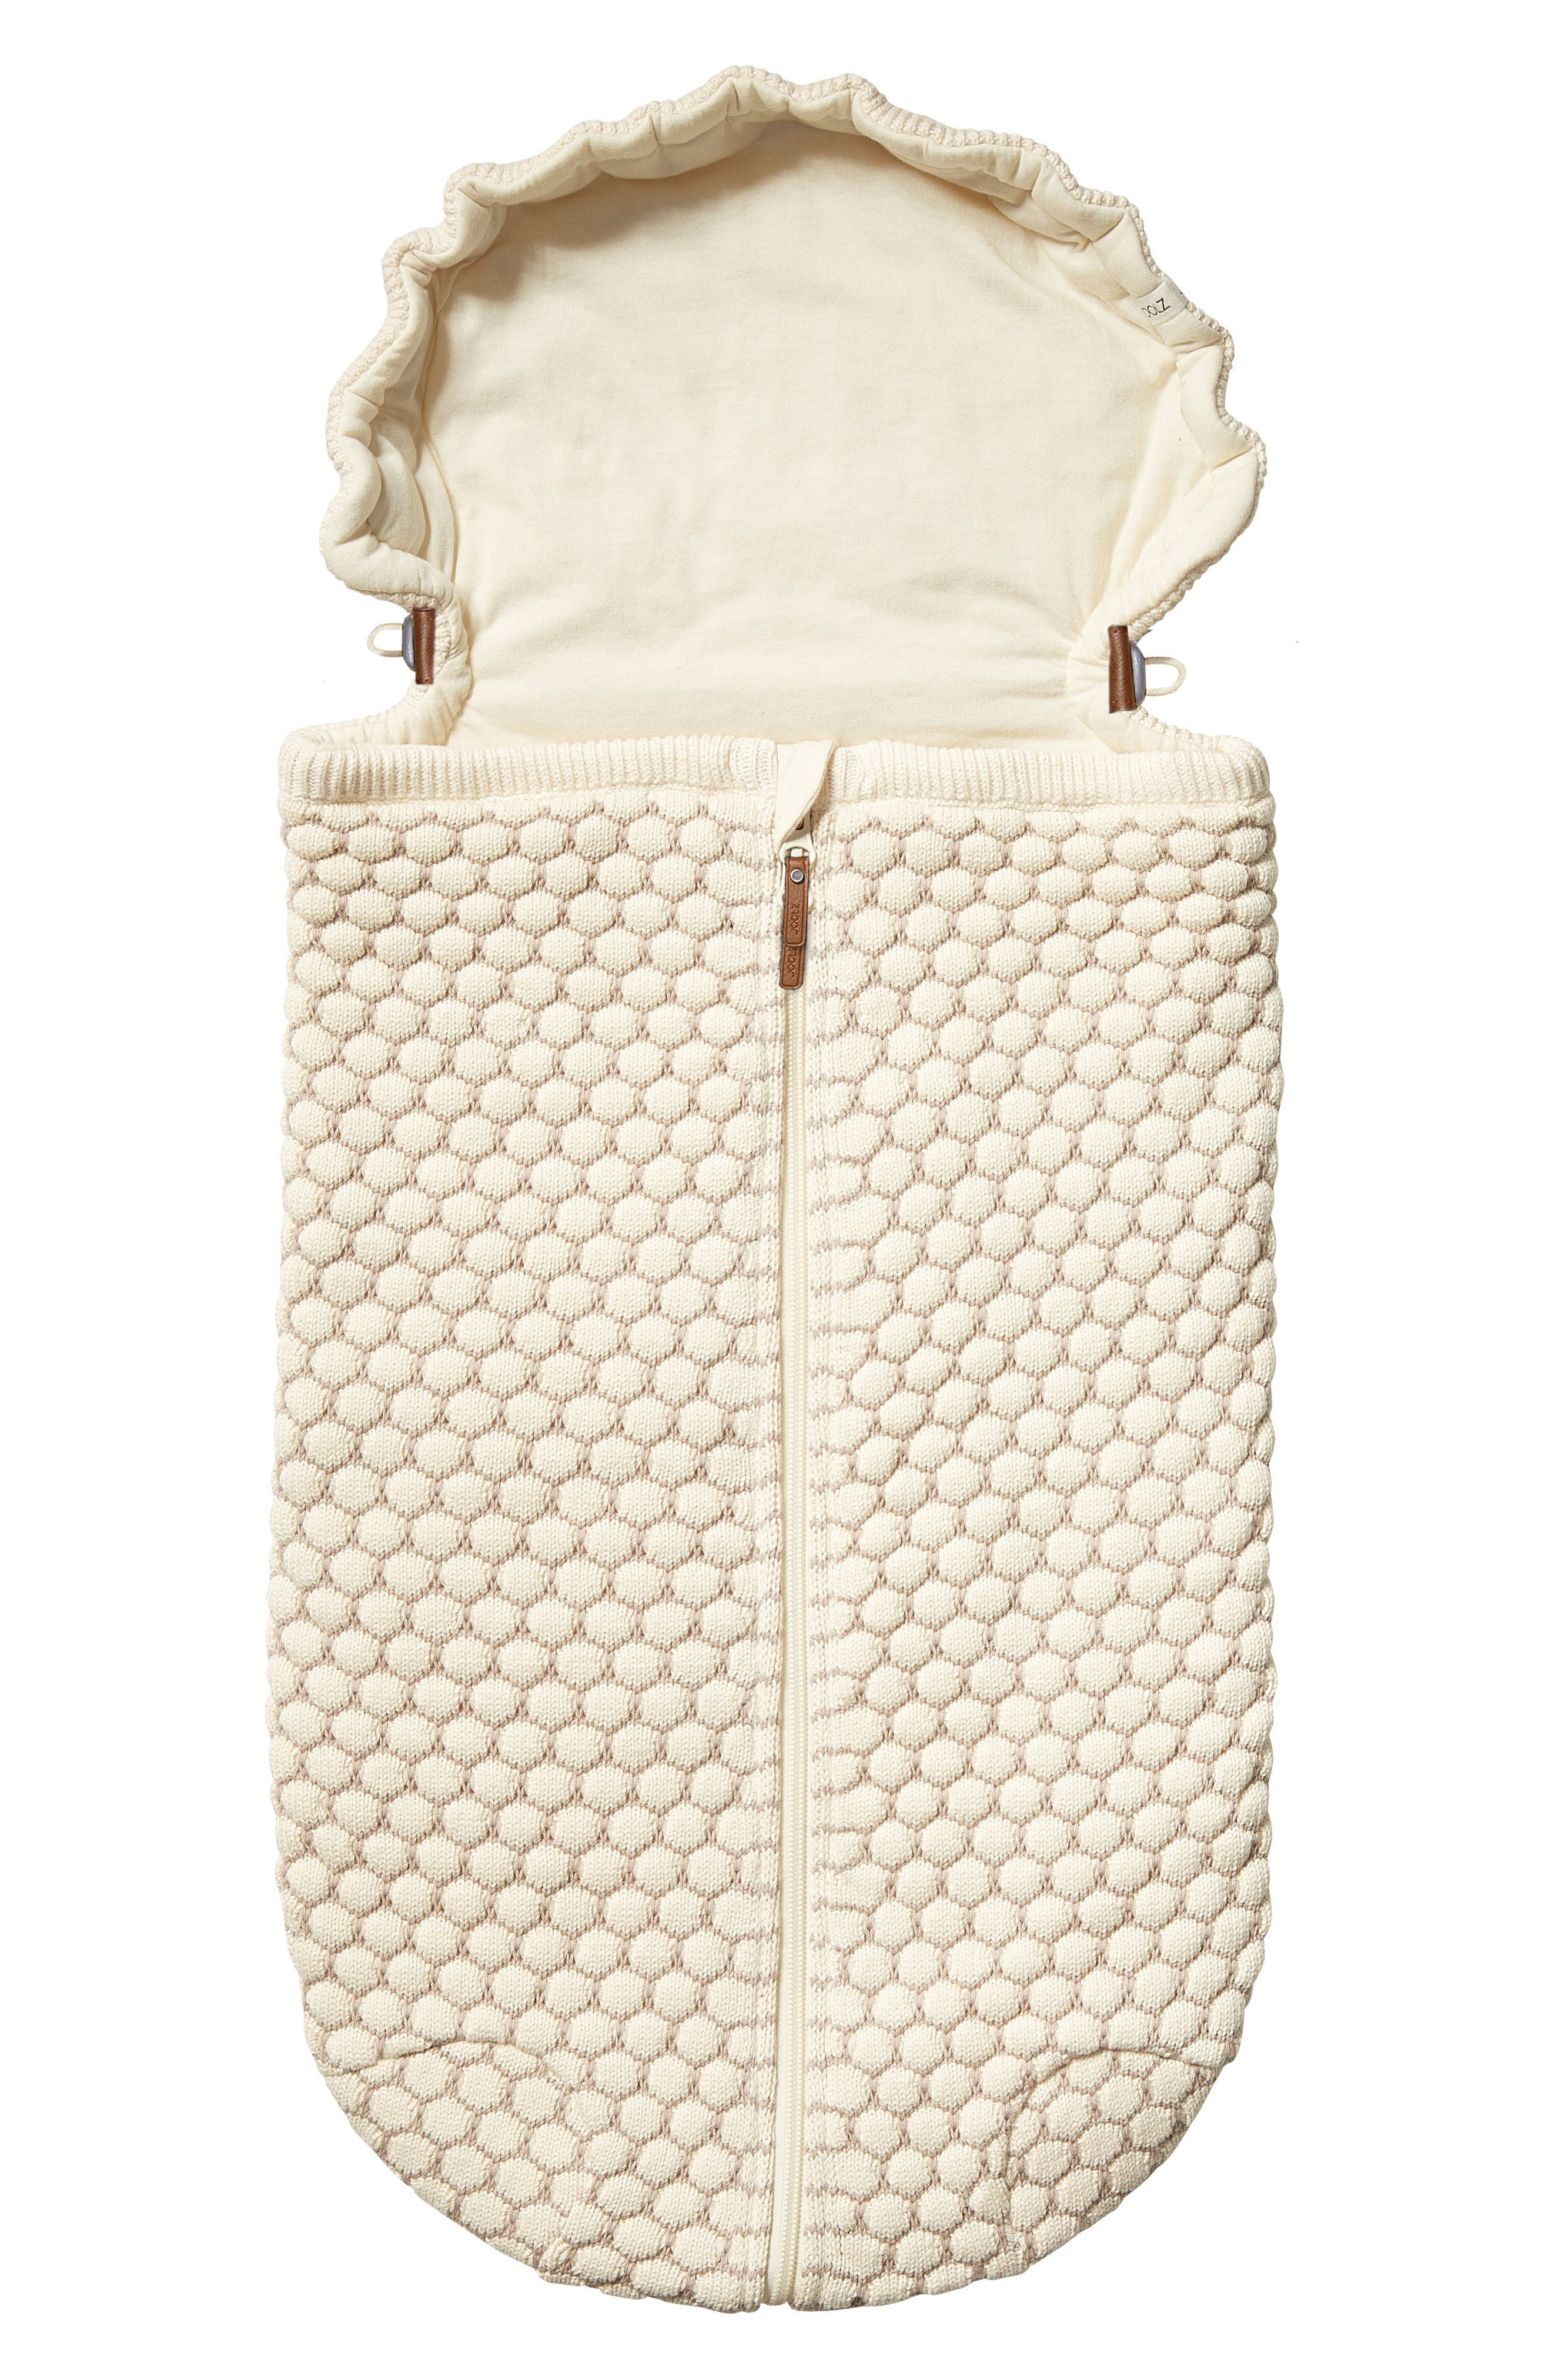 Essentials Honeycomb Organic Cotton Nest,                         Main,                         color, Off White